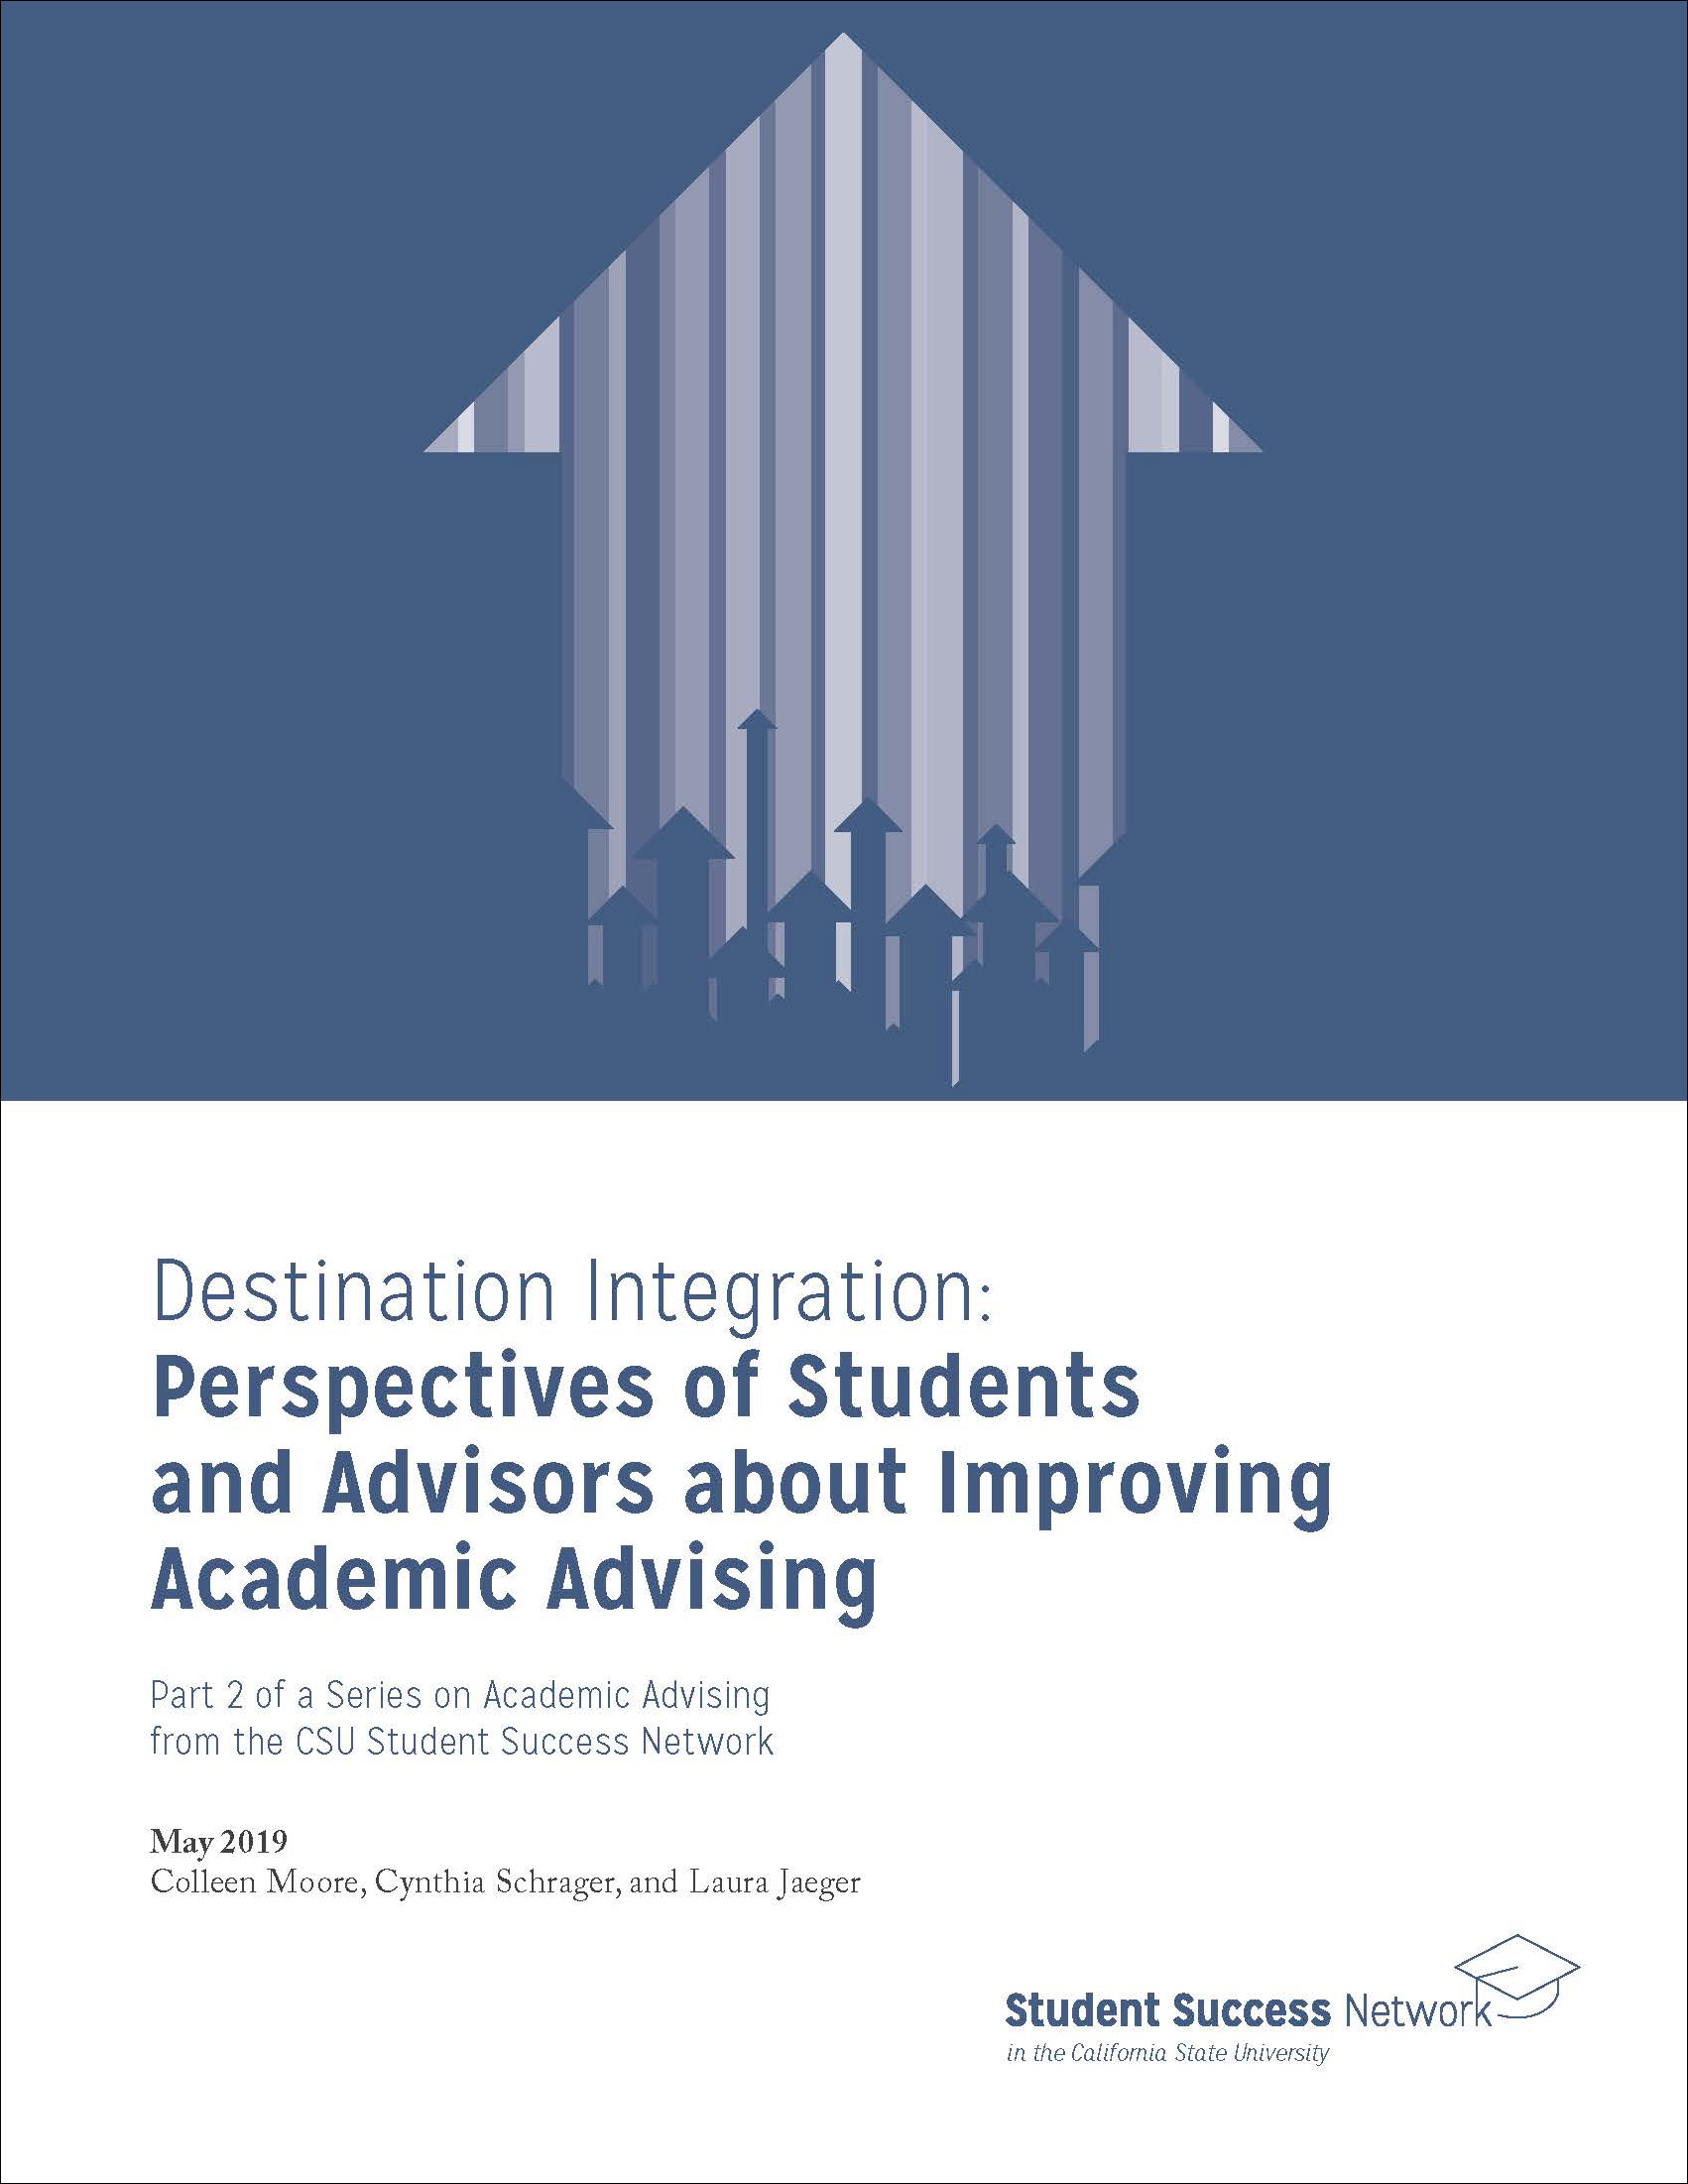 Destination Integration: Perspectives of Students and Advisors about Improving Academic Advising